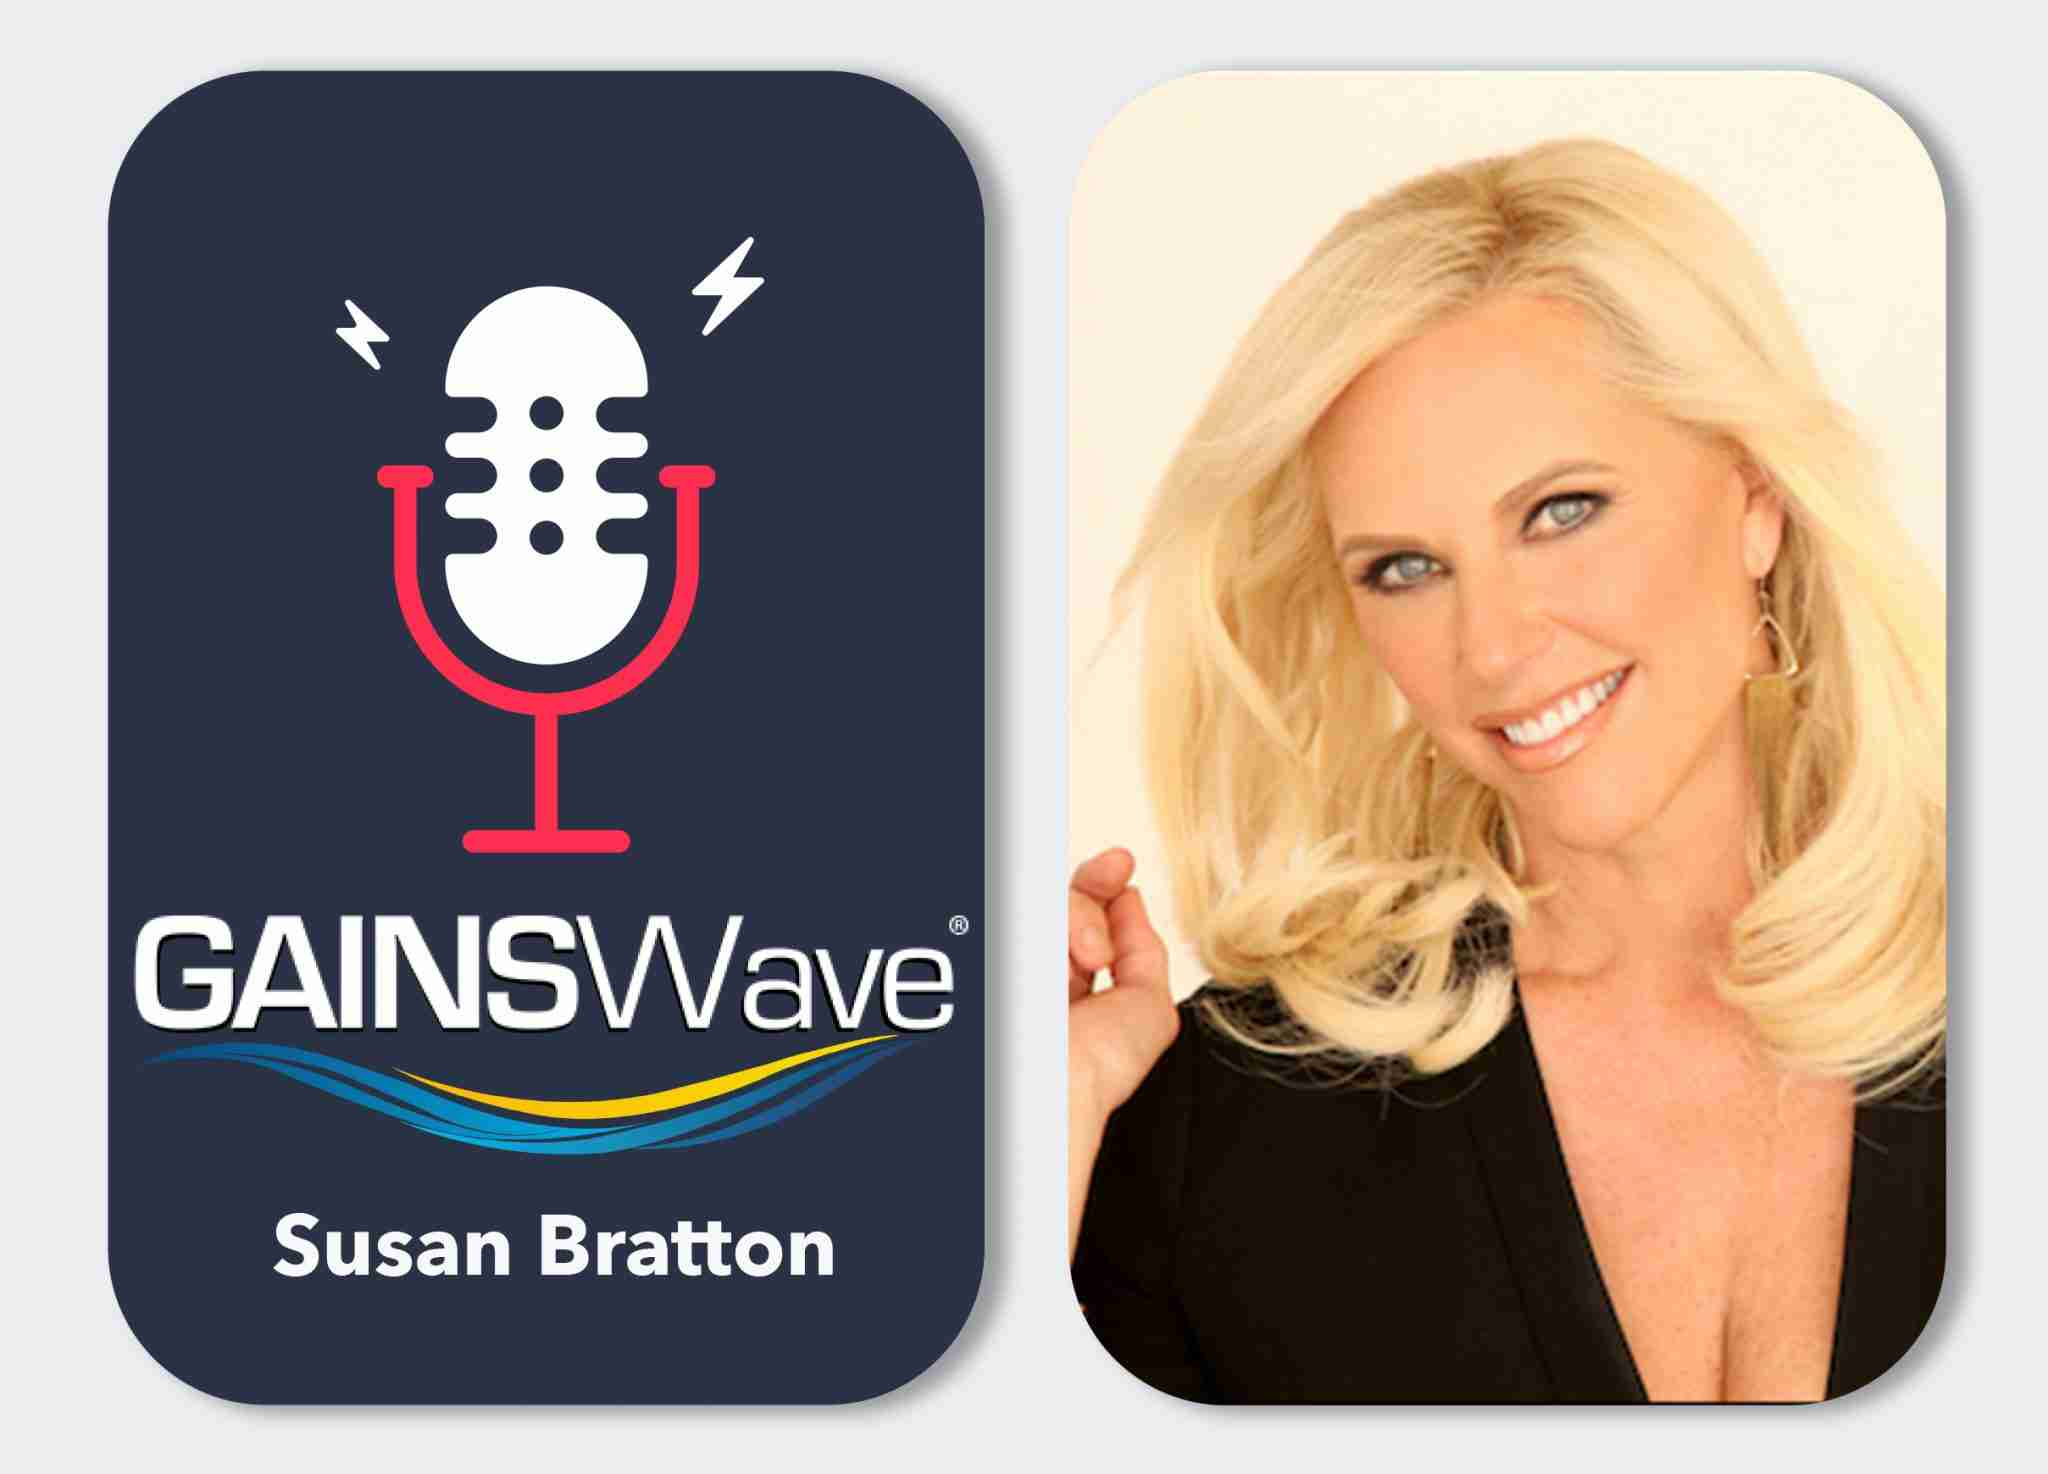 Trusted Hot Sex Advisor to Millions, Susan Bratton, Takes GAINSWave On Tour